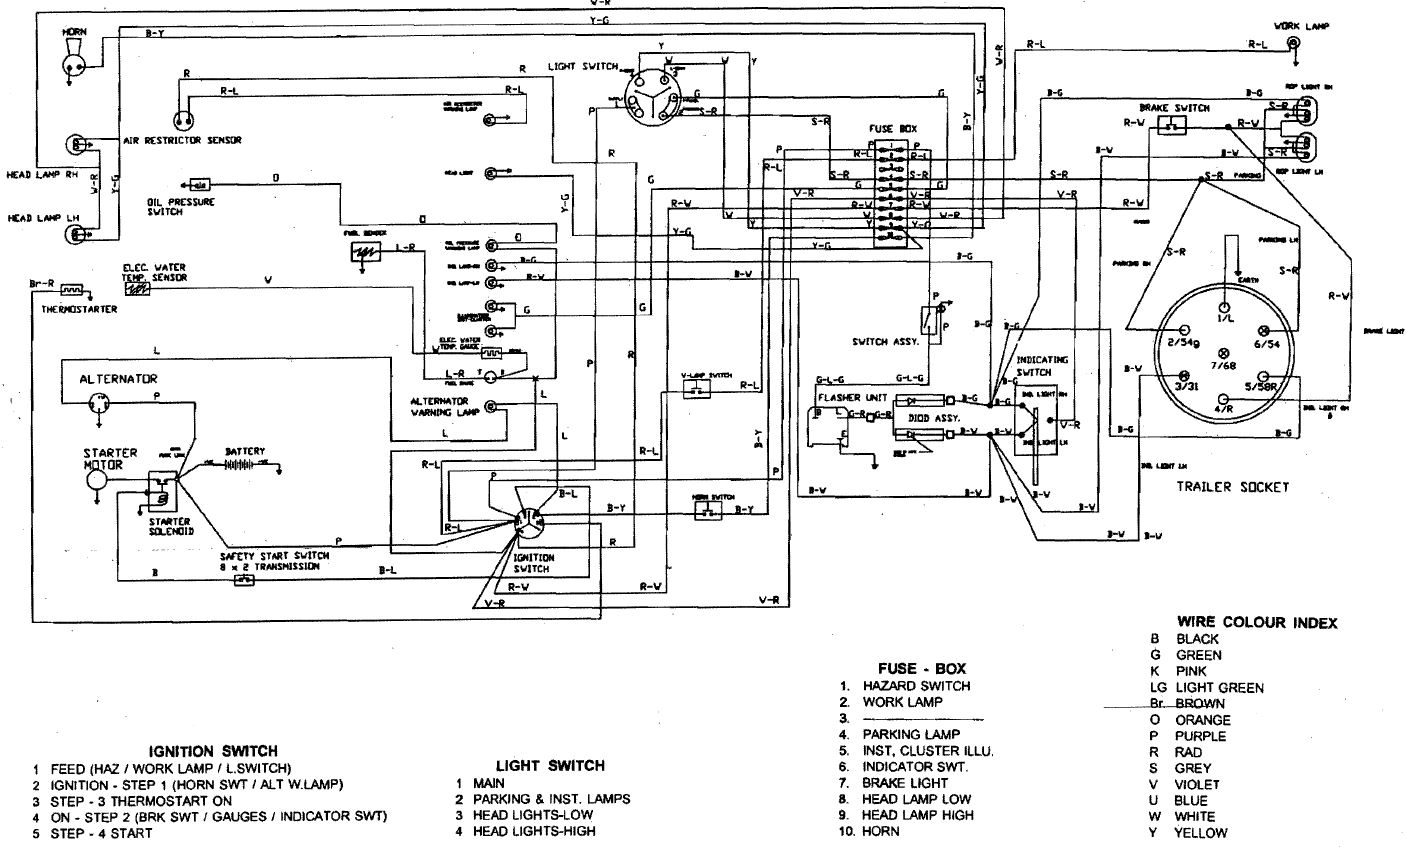 ignition switch wiring diagram hopefully this helps